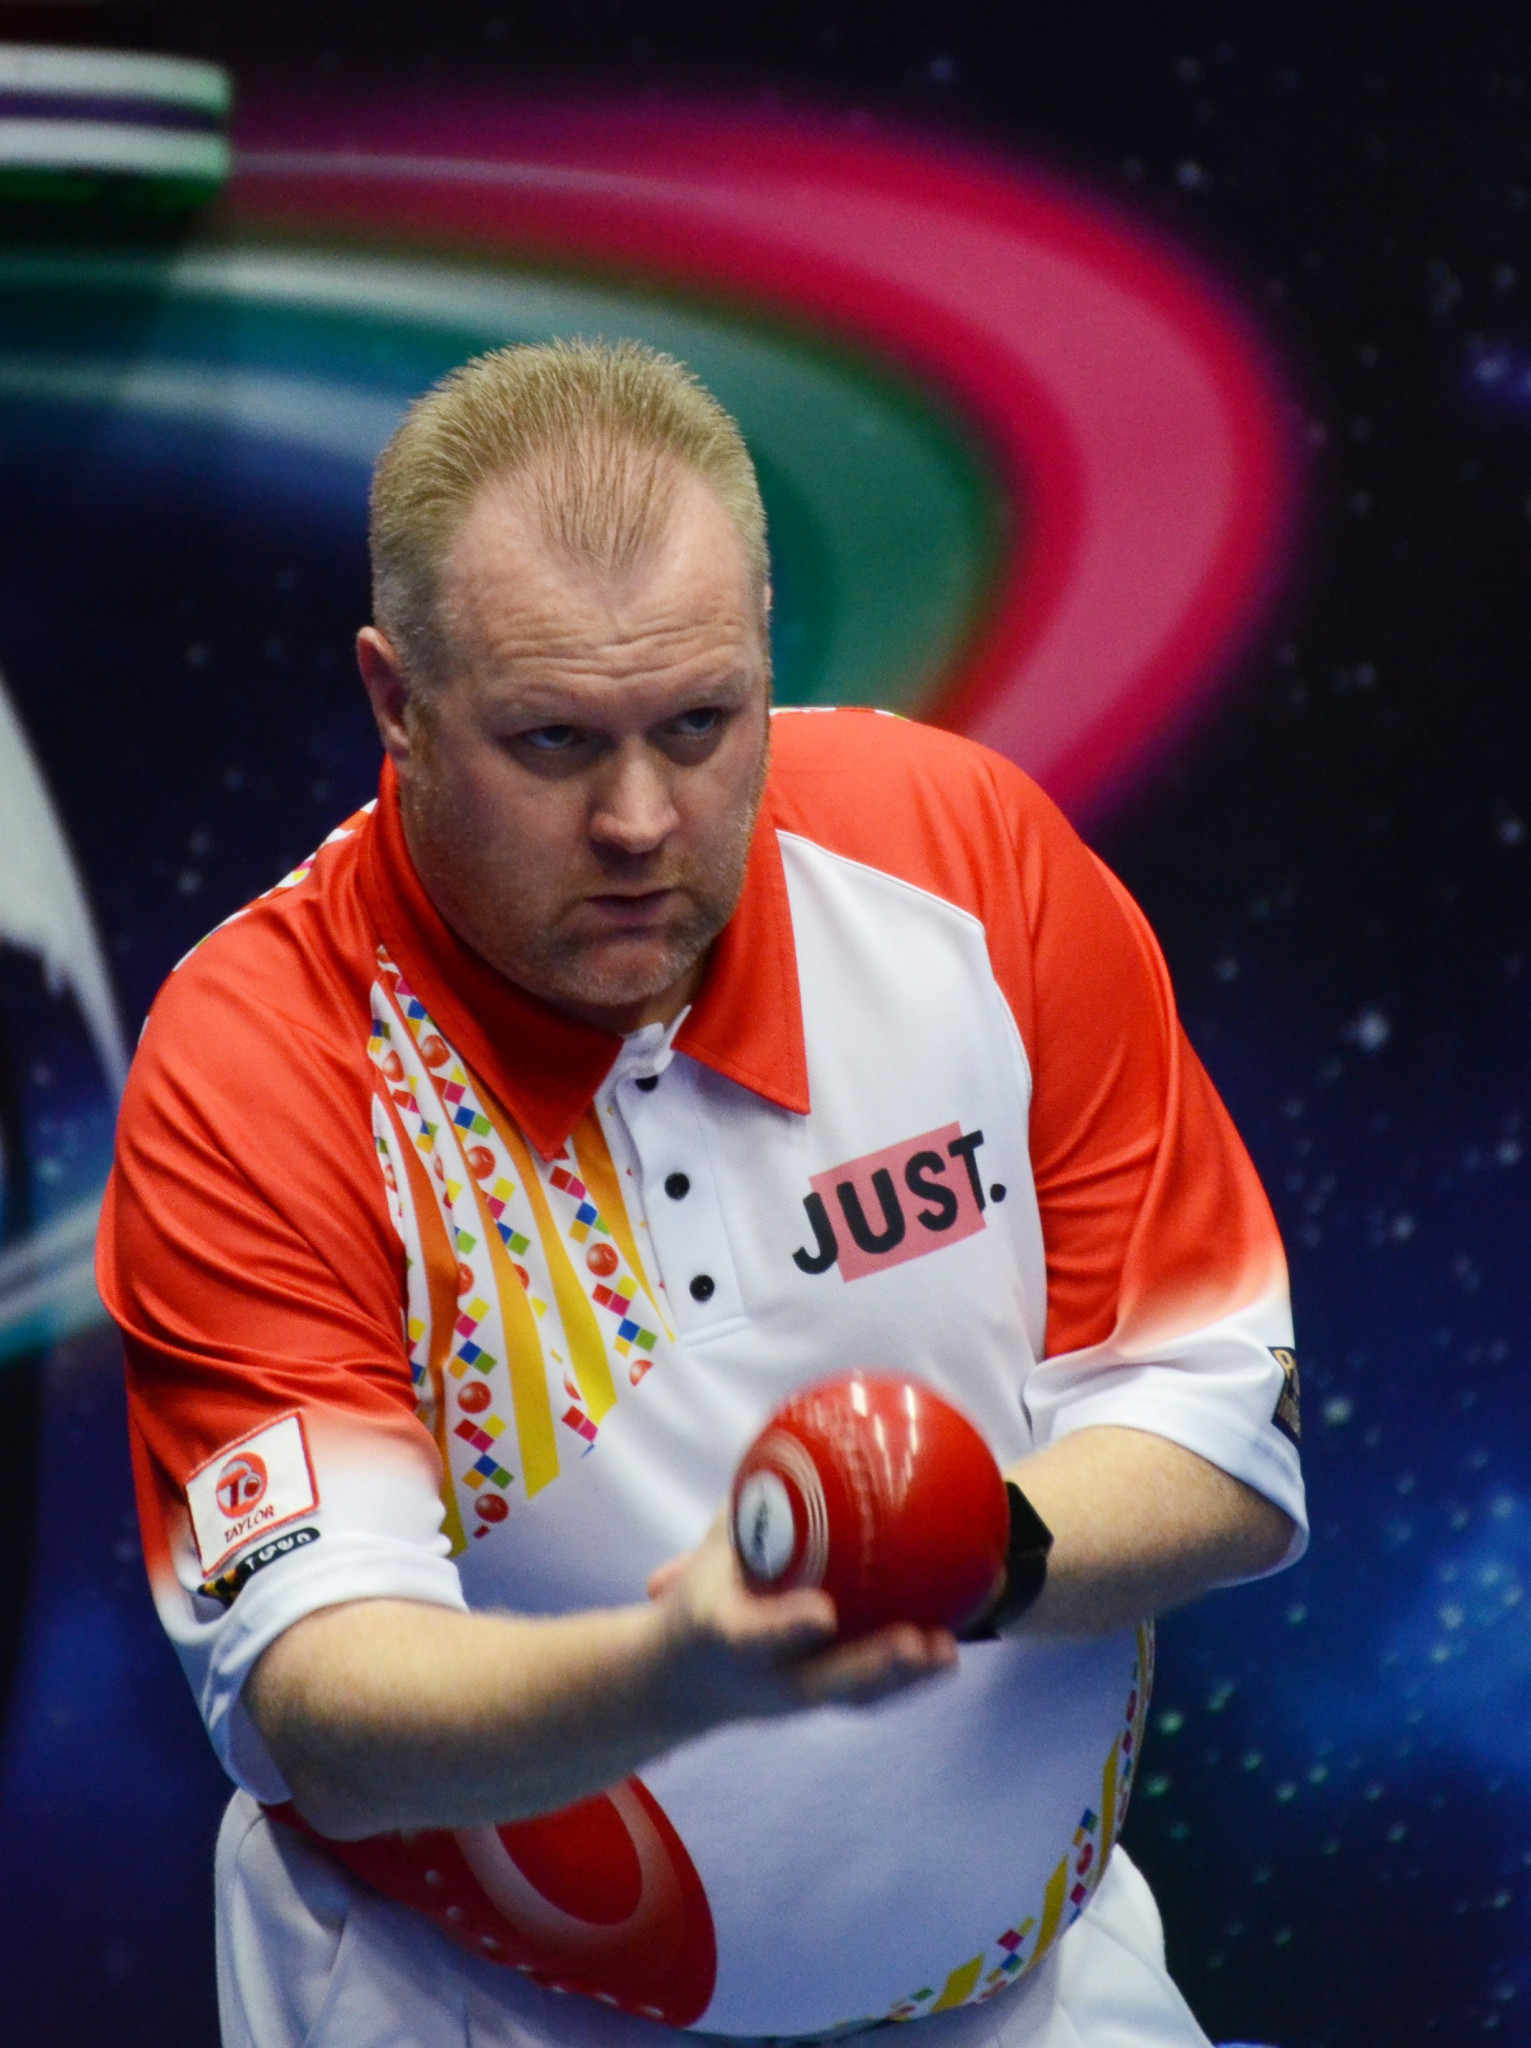 Darren Burnett won an all-Scottish men's singles match against Graham McKee today ©World Bowls Tour